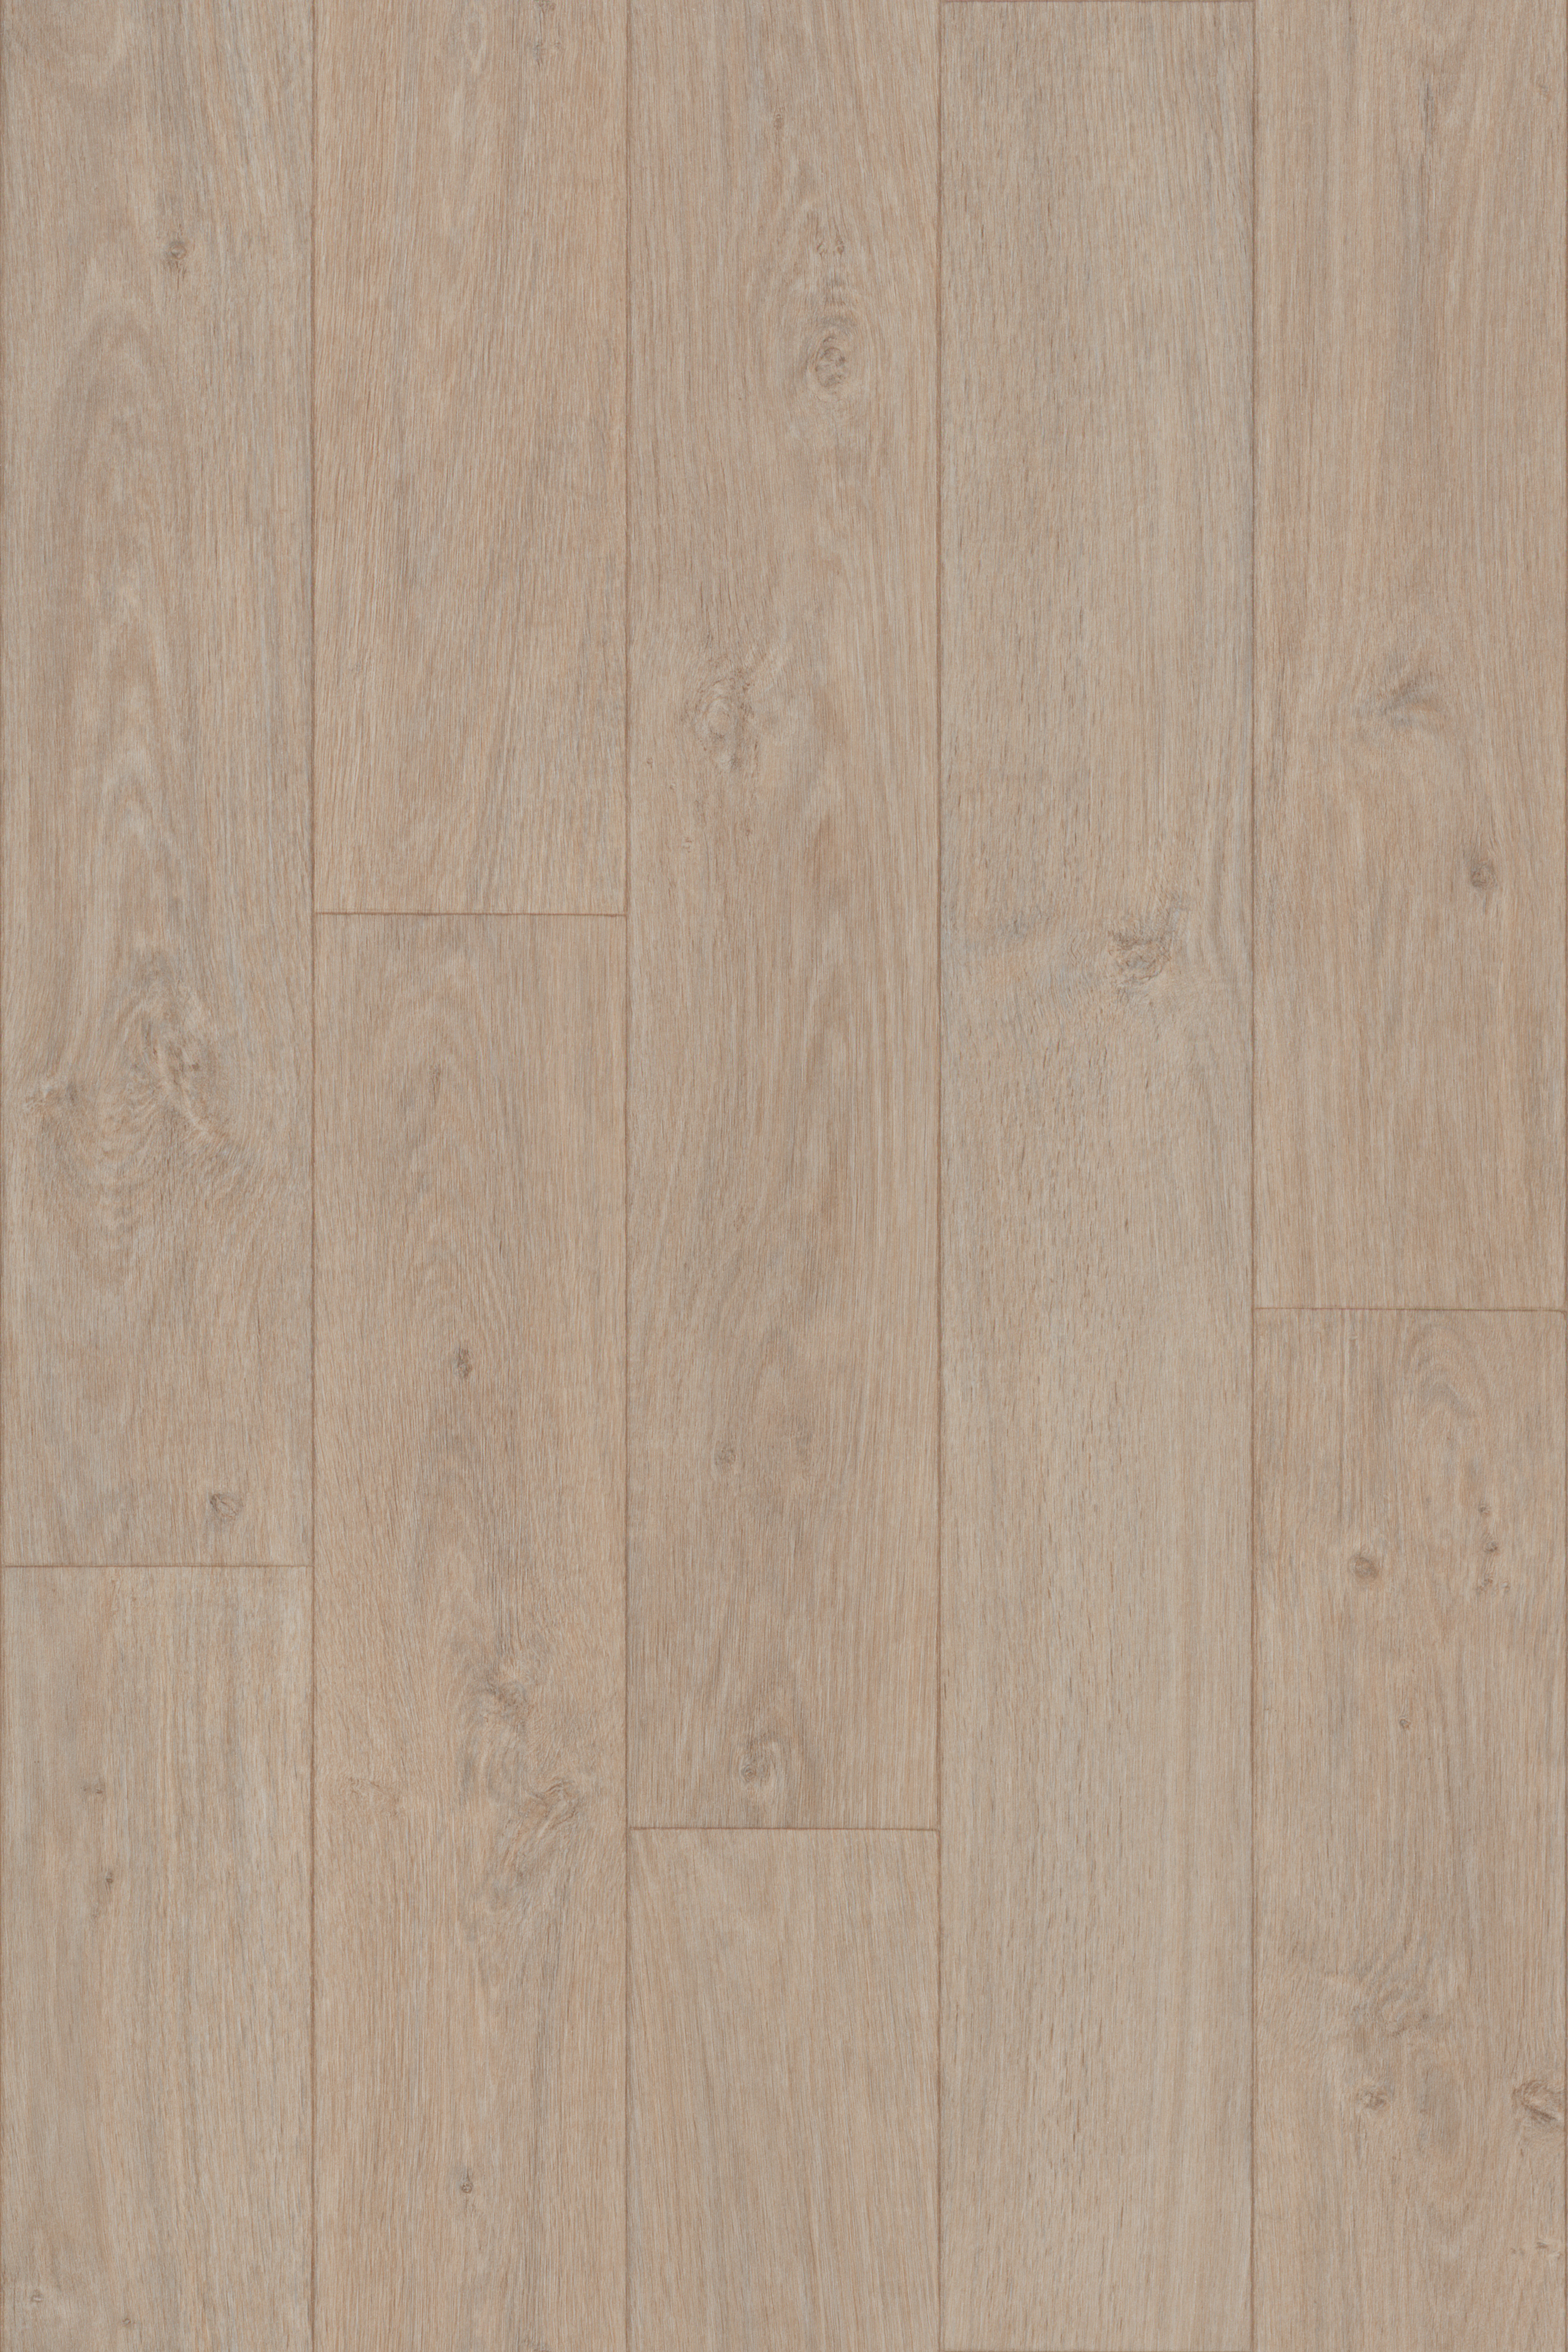 Surestep Wood Safety Flooring Forbo Flooring Systems